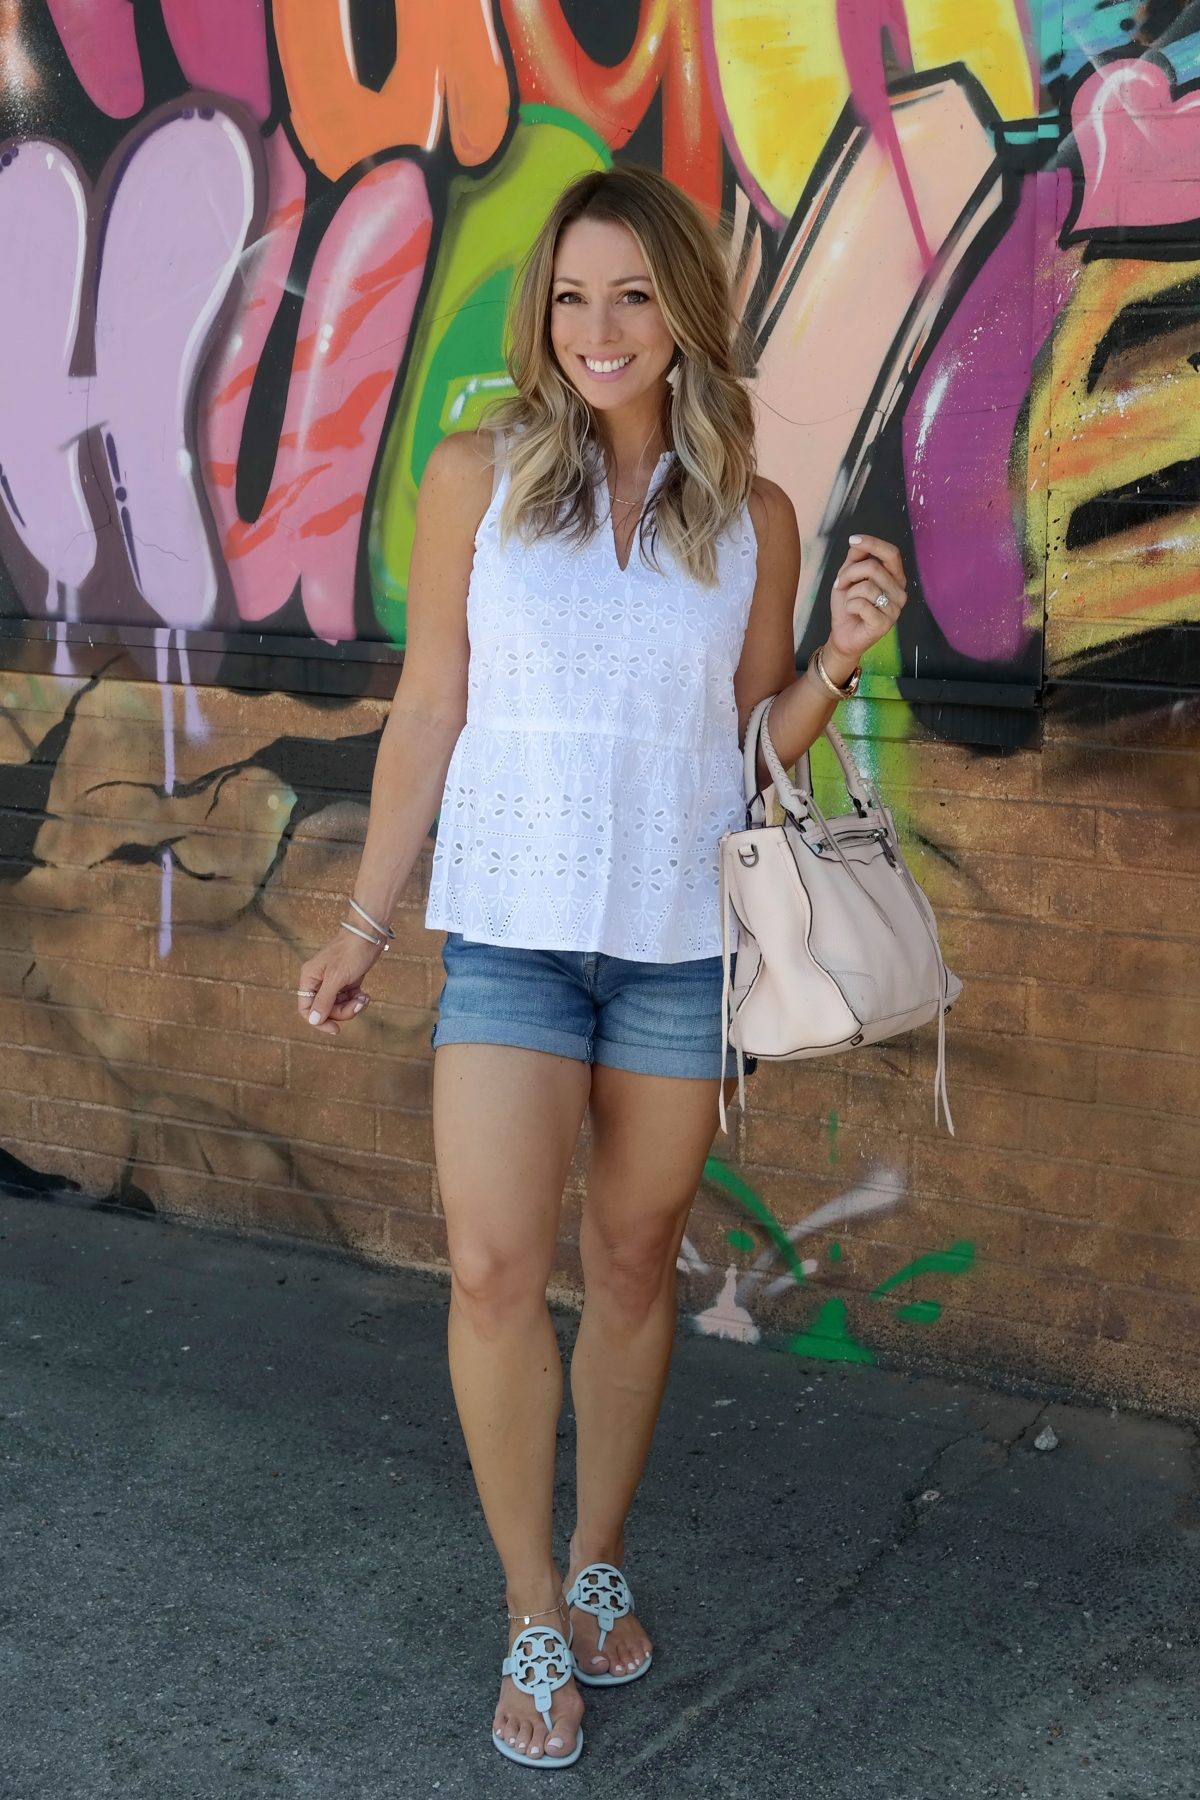 Spring & Summer outfit - Eyelet top and jean shorts with flat sandals